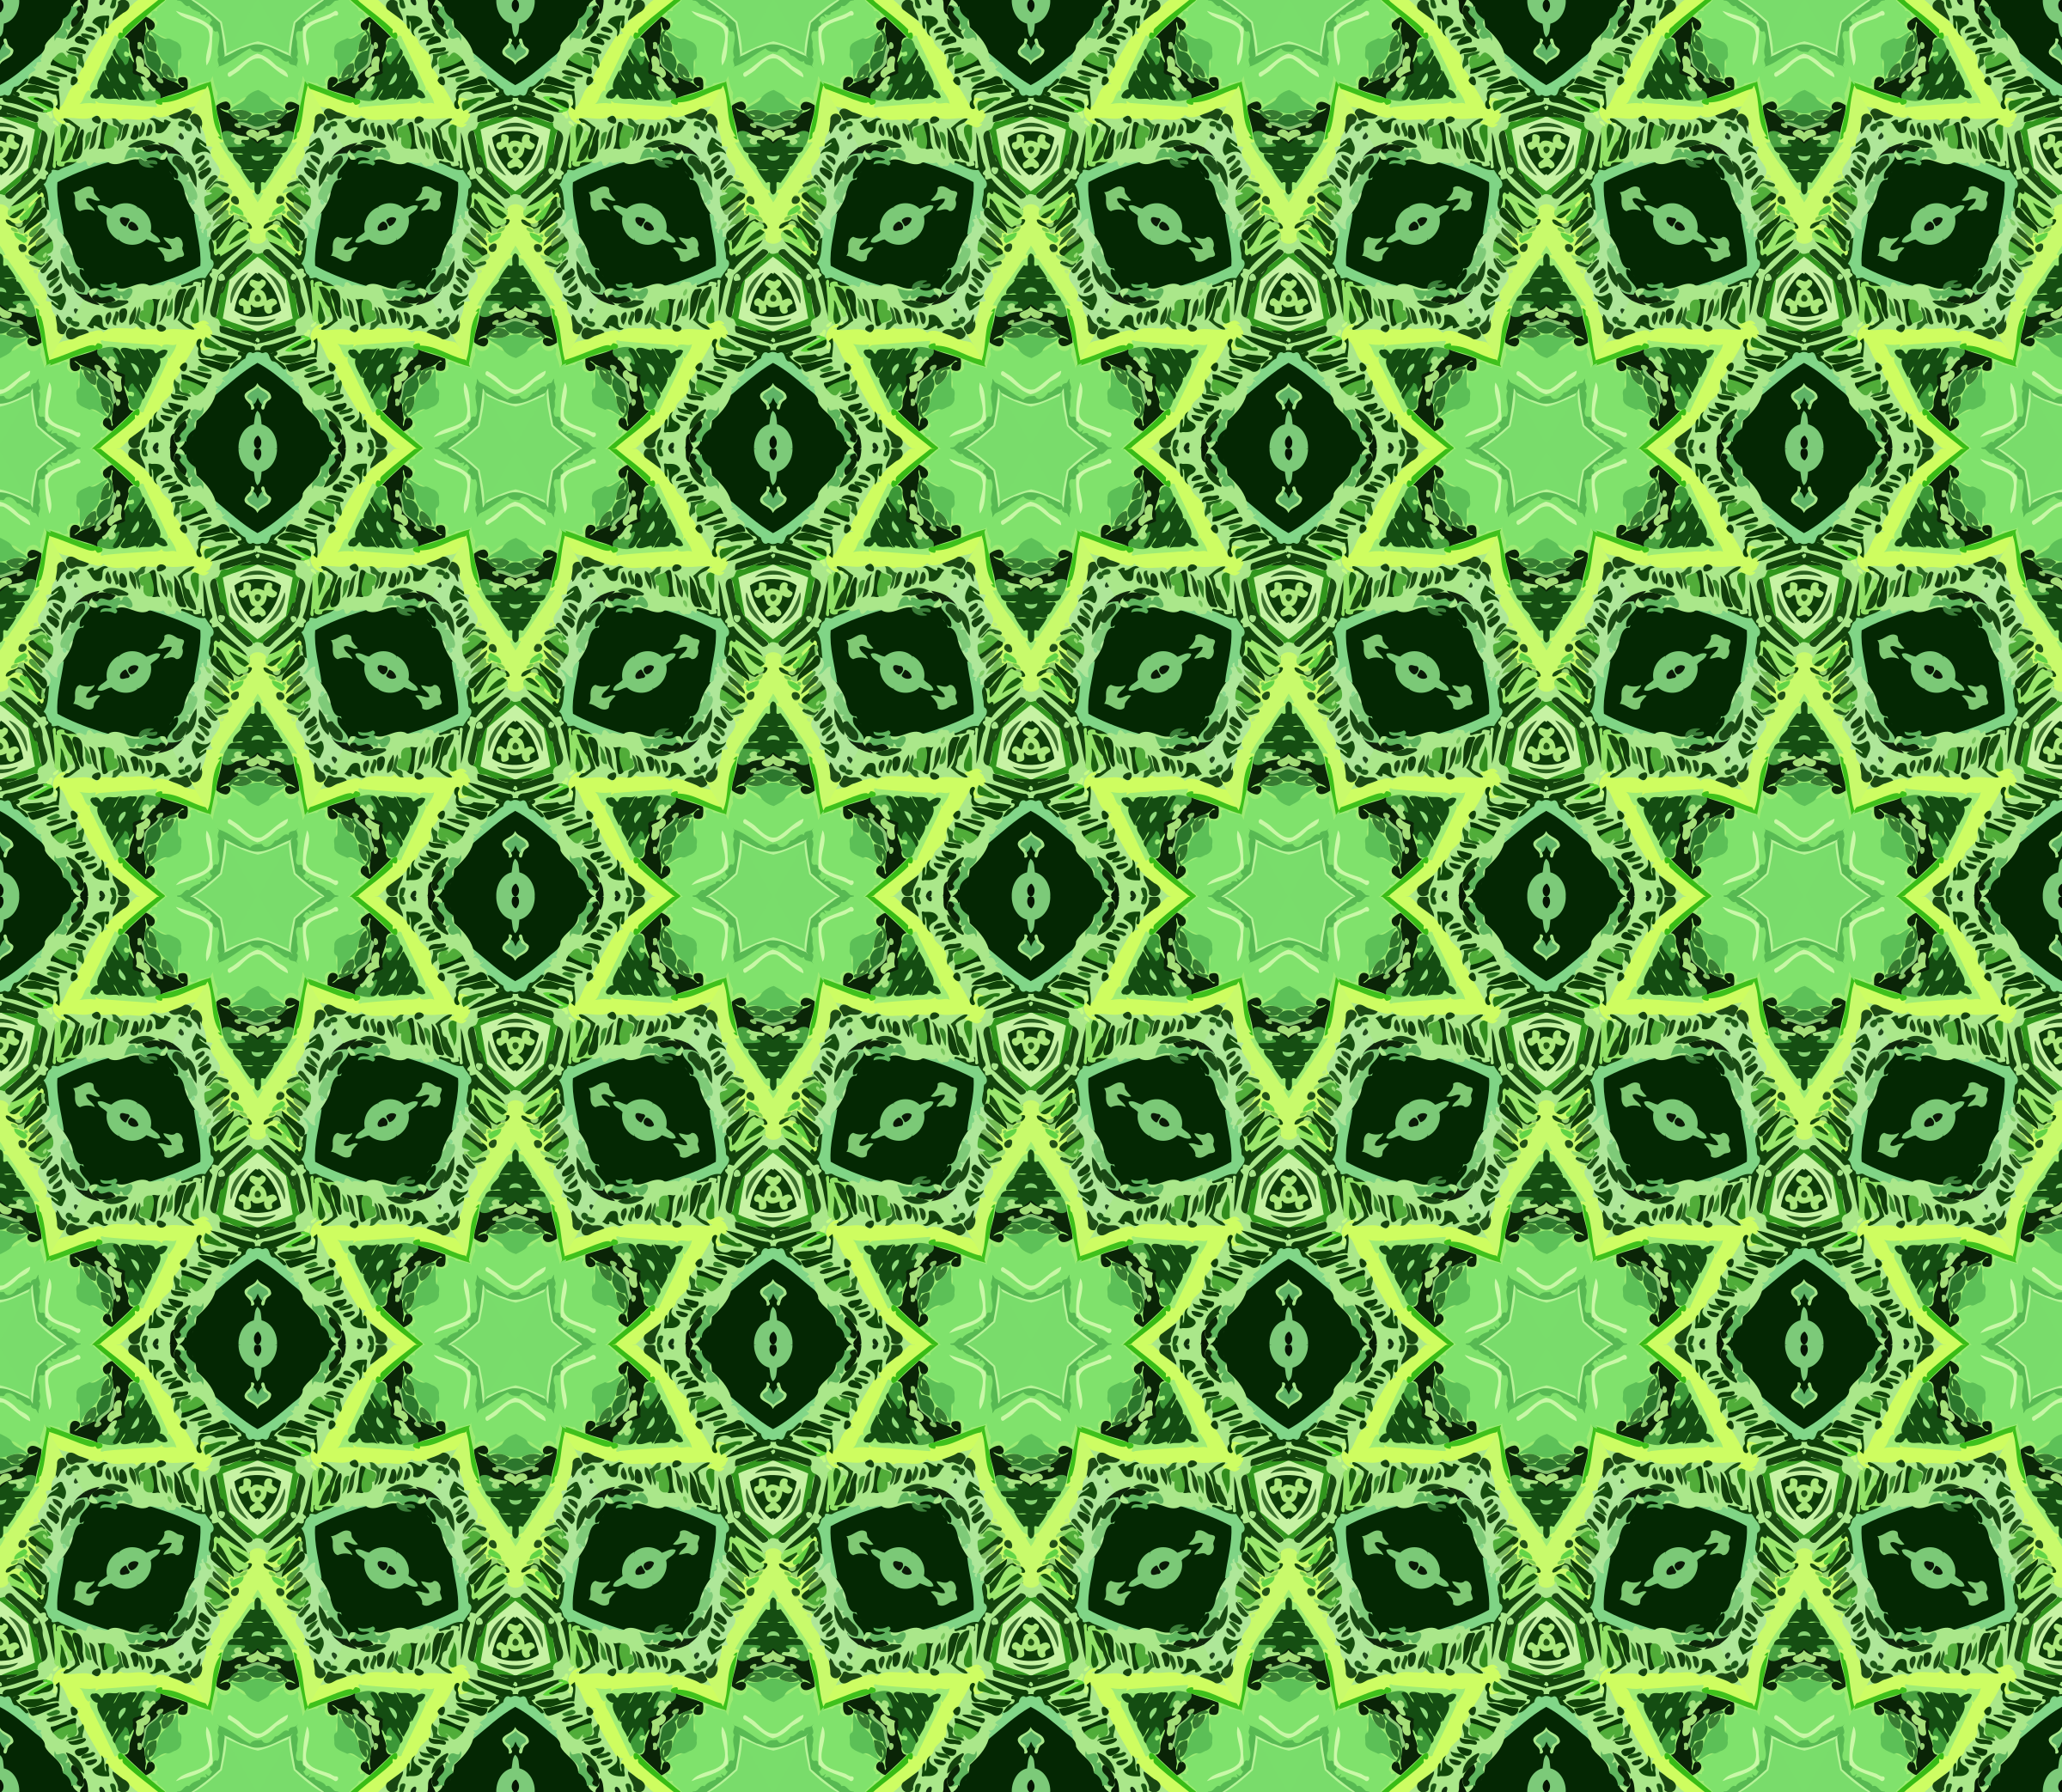 Background pattern 153 (colour 4) by Firkin